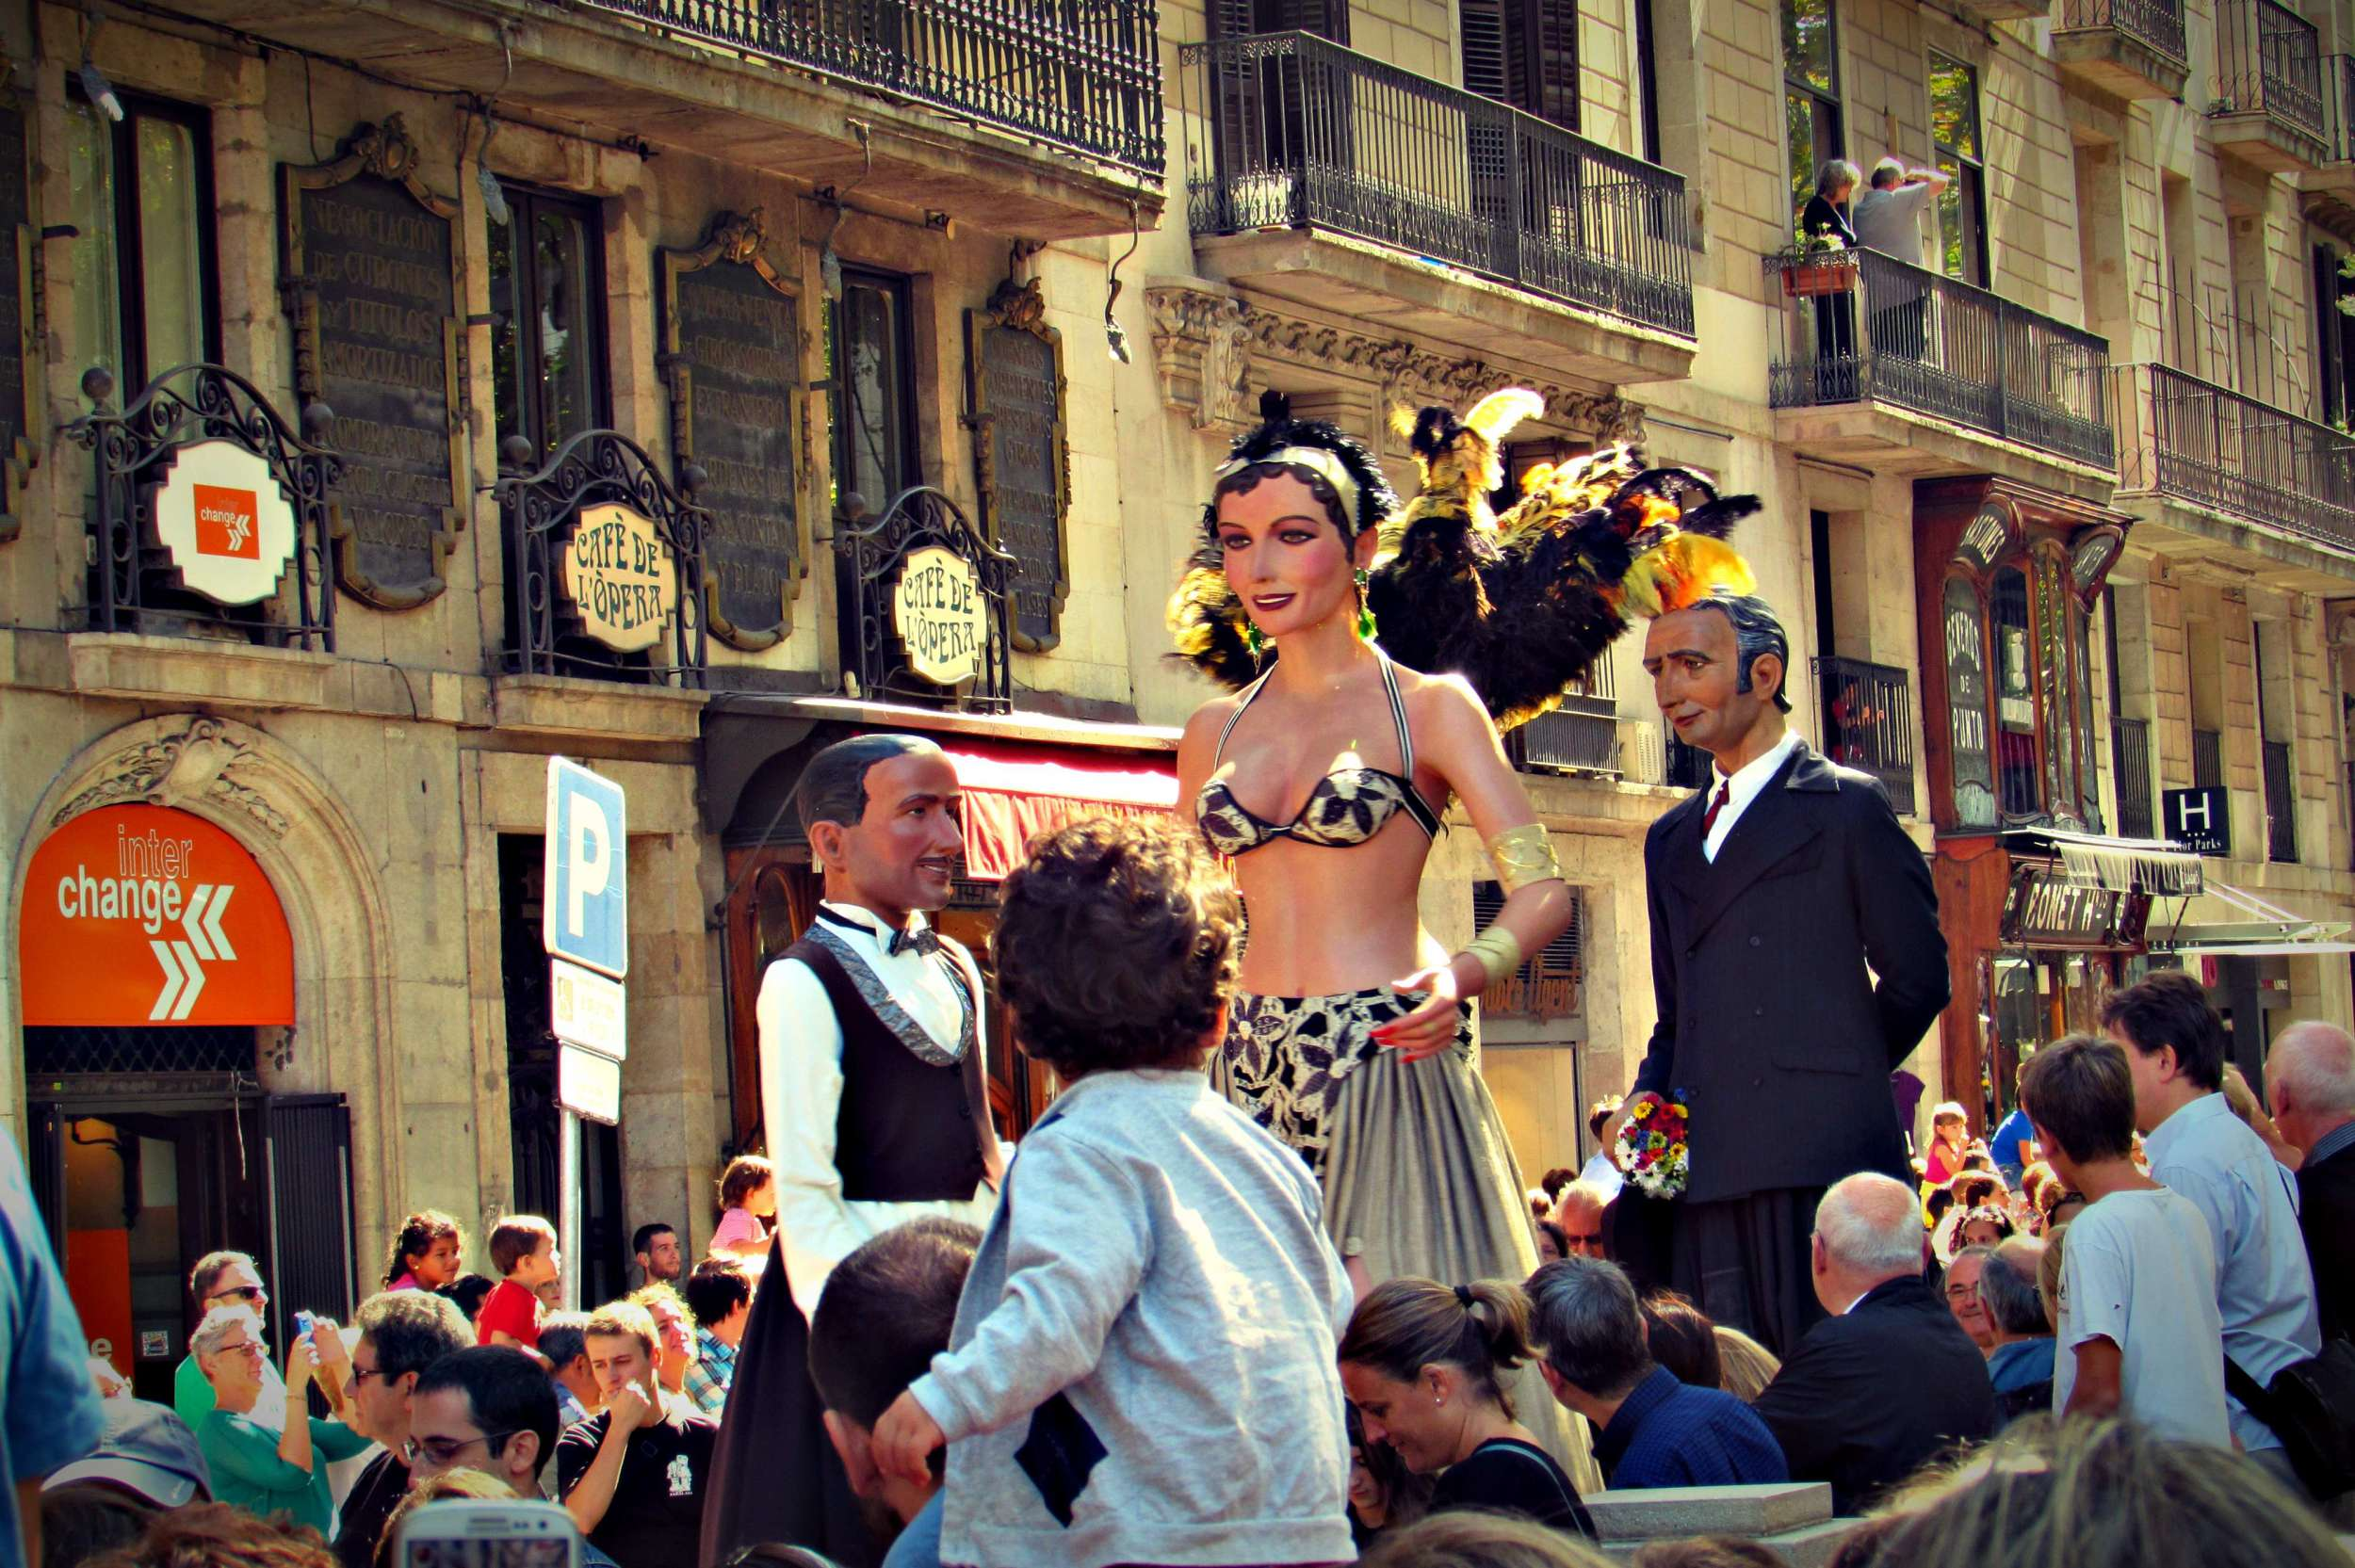 Giants Parade Barcelona La Merce Festival Every September